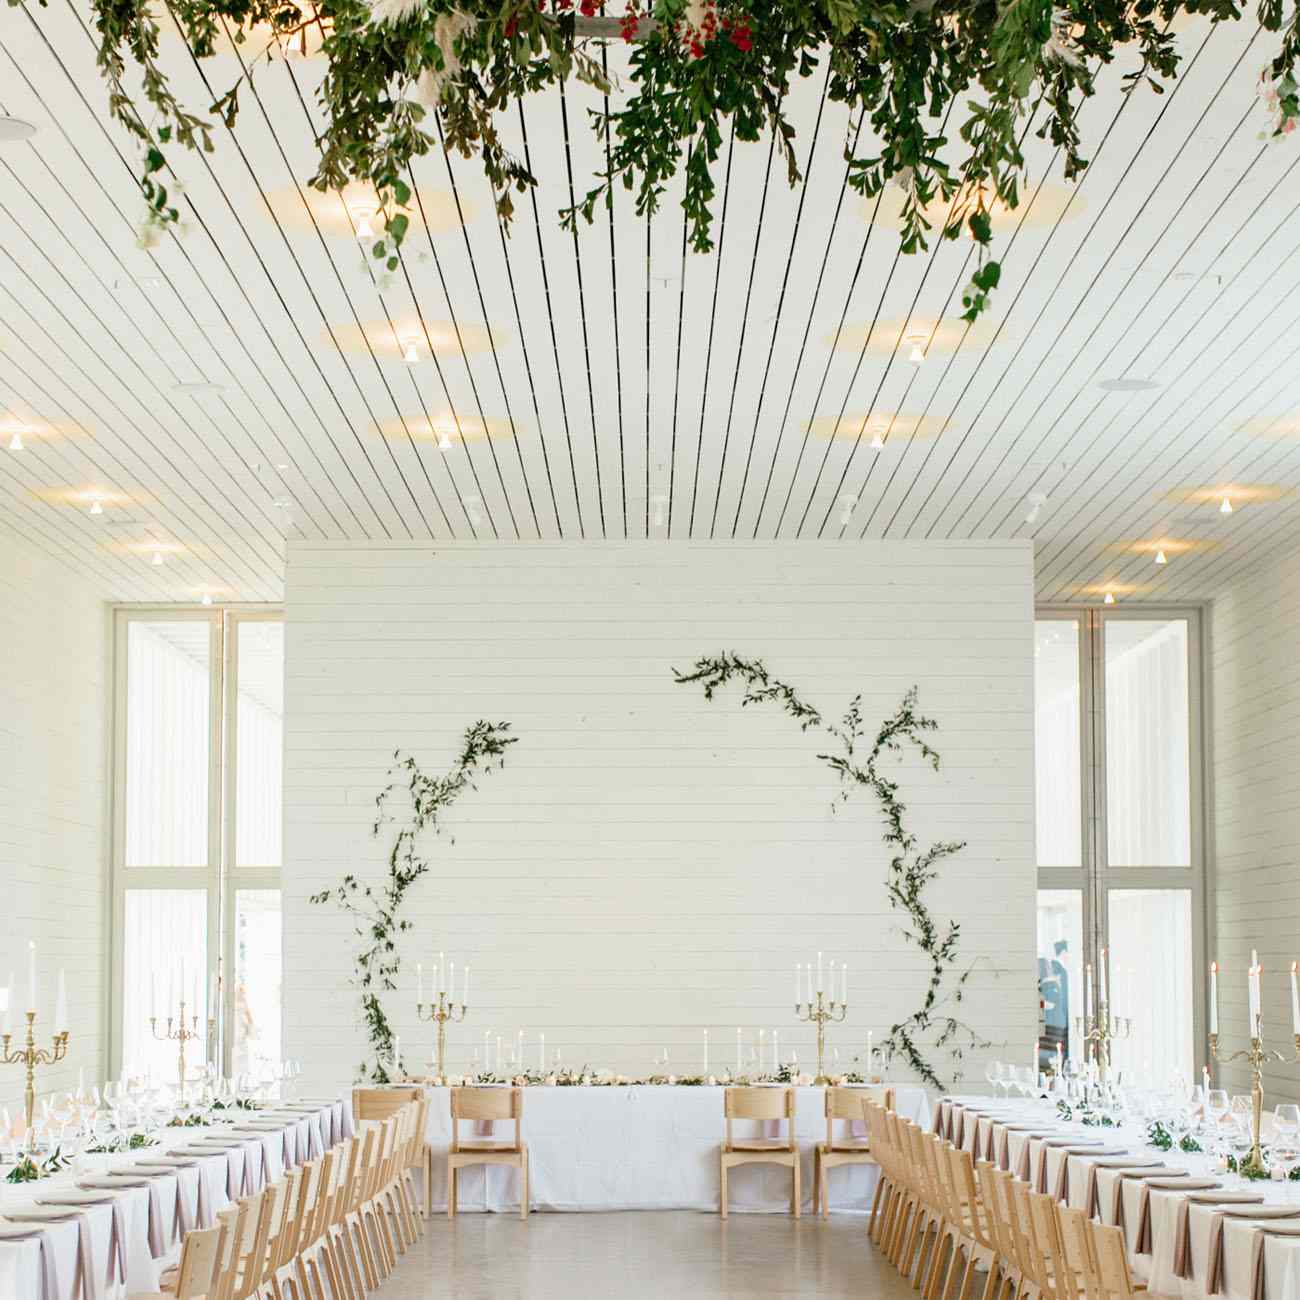 Simple Wedding Decoration Idea With White Table Setting